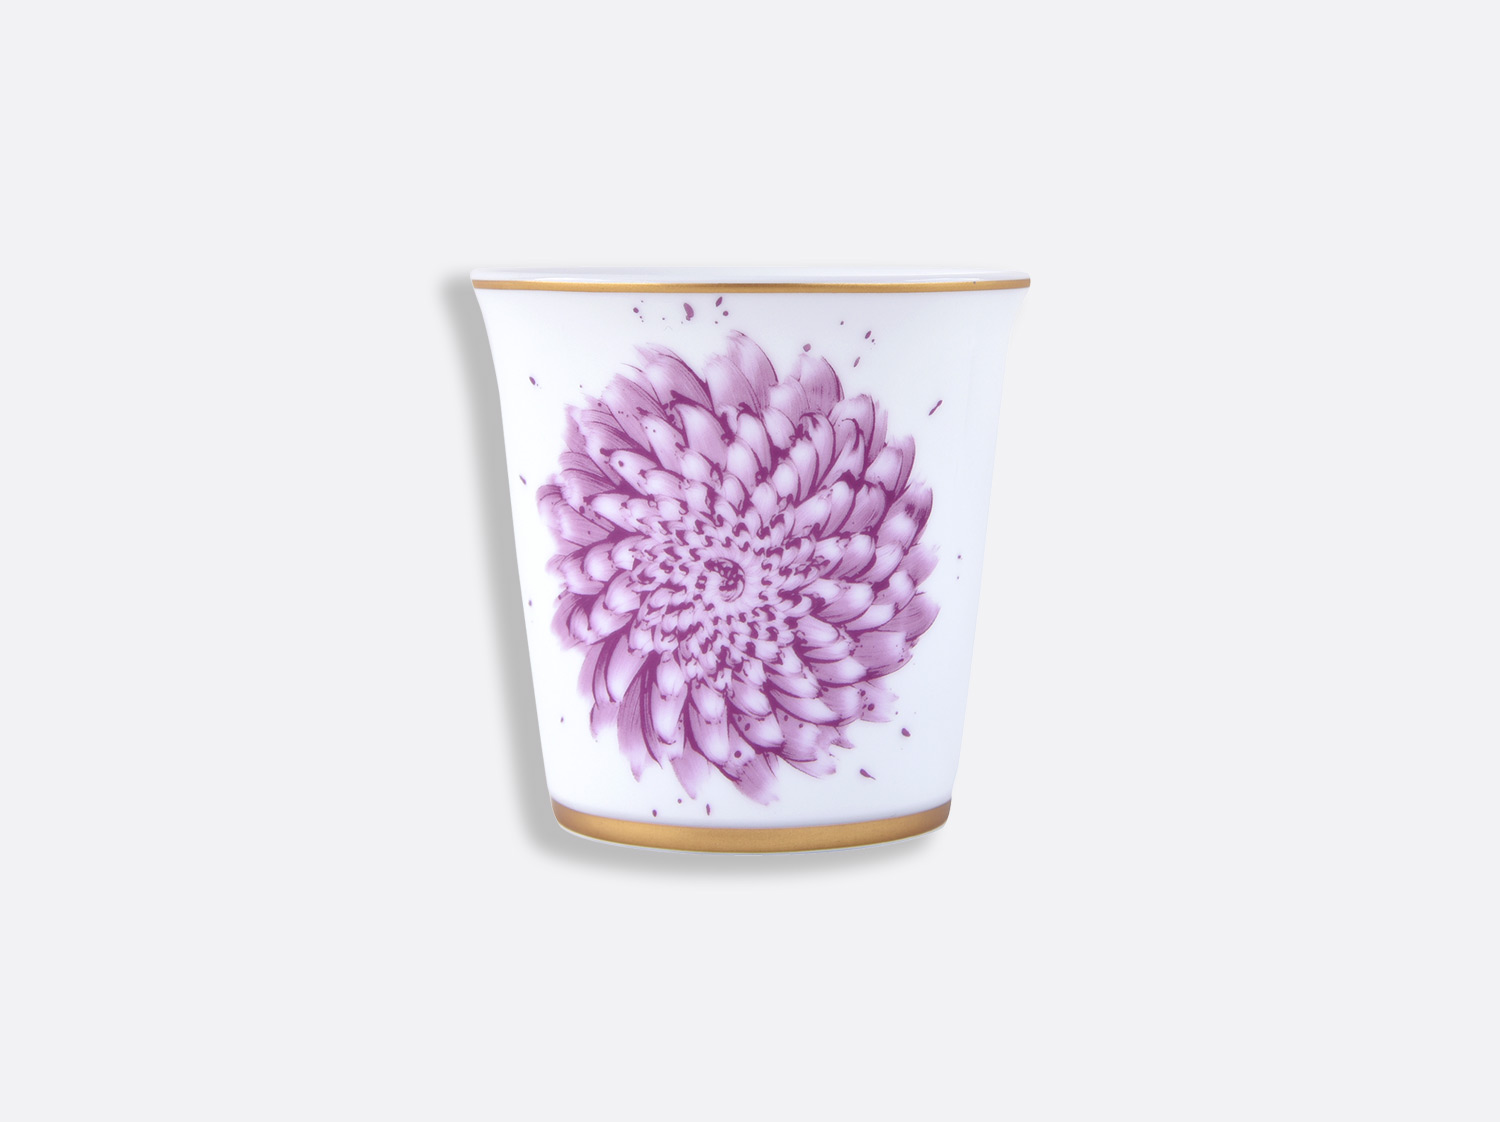 Pot 9 cm + bougie parfumée 200g en porcelaine de la collection IN BLOOM - Zemer Peled Bernardaud